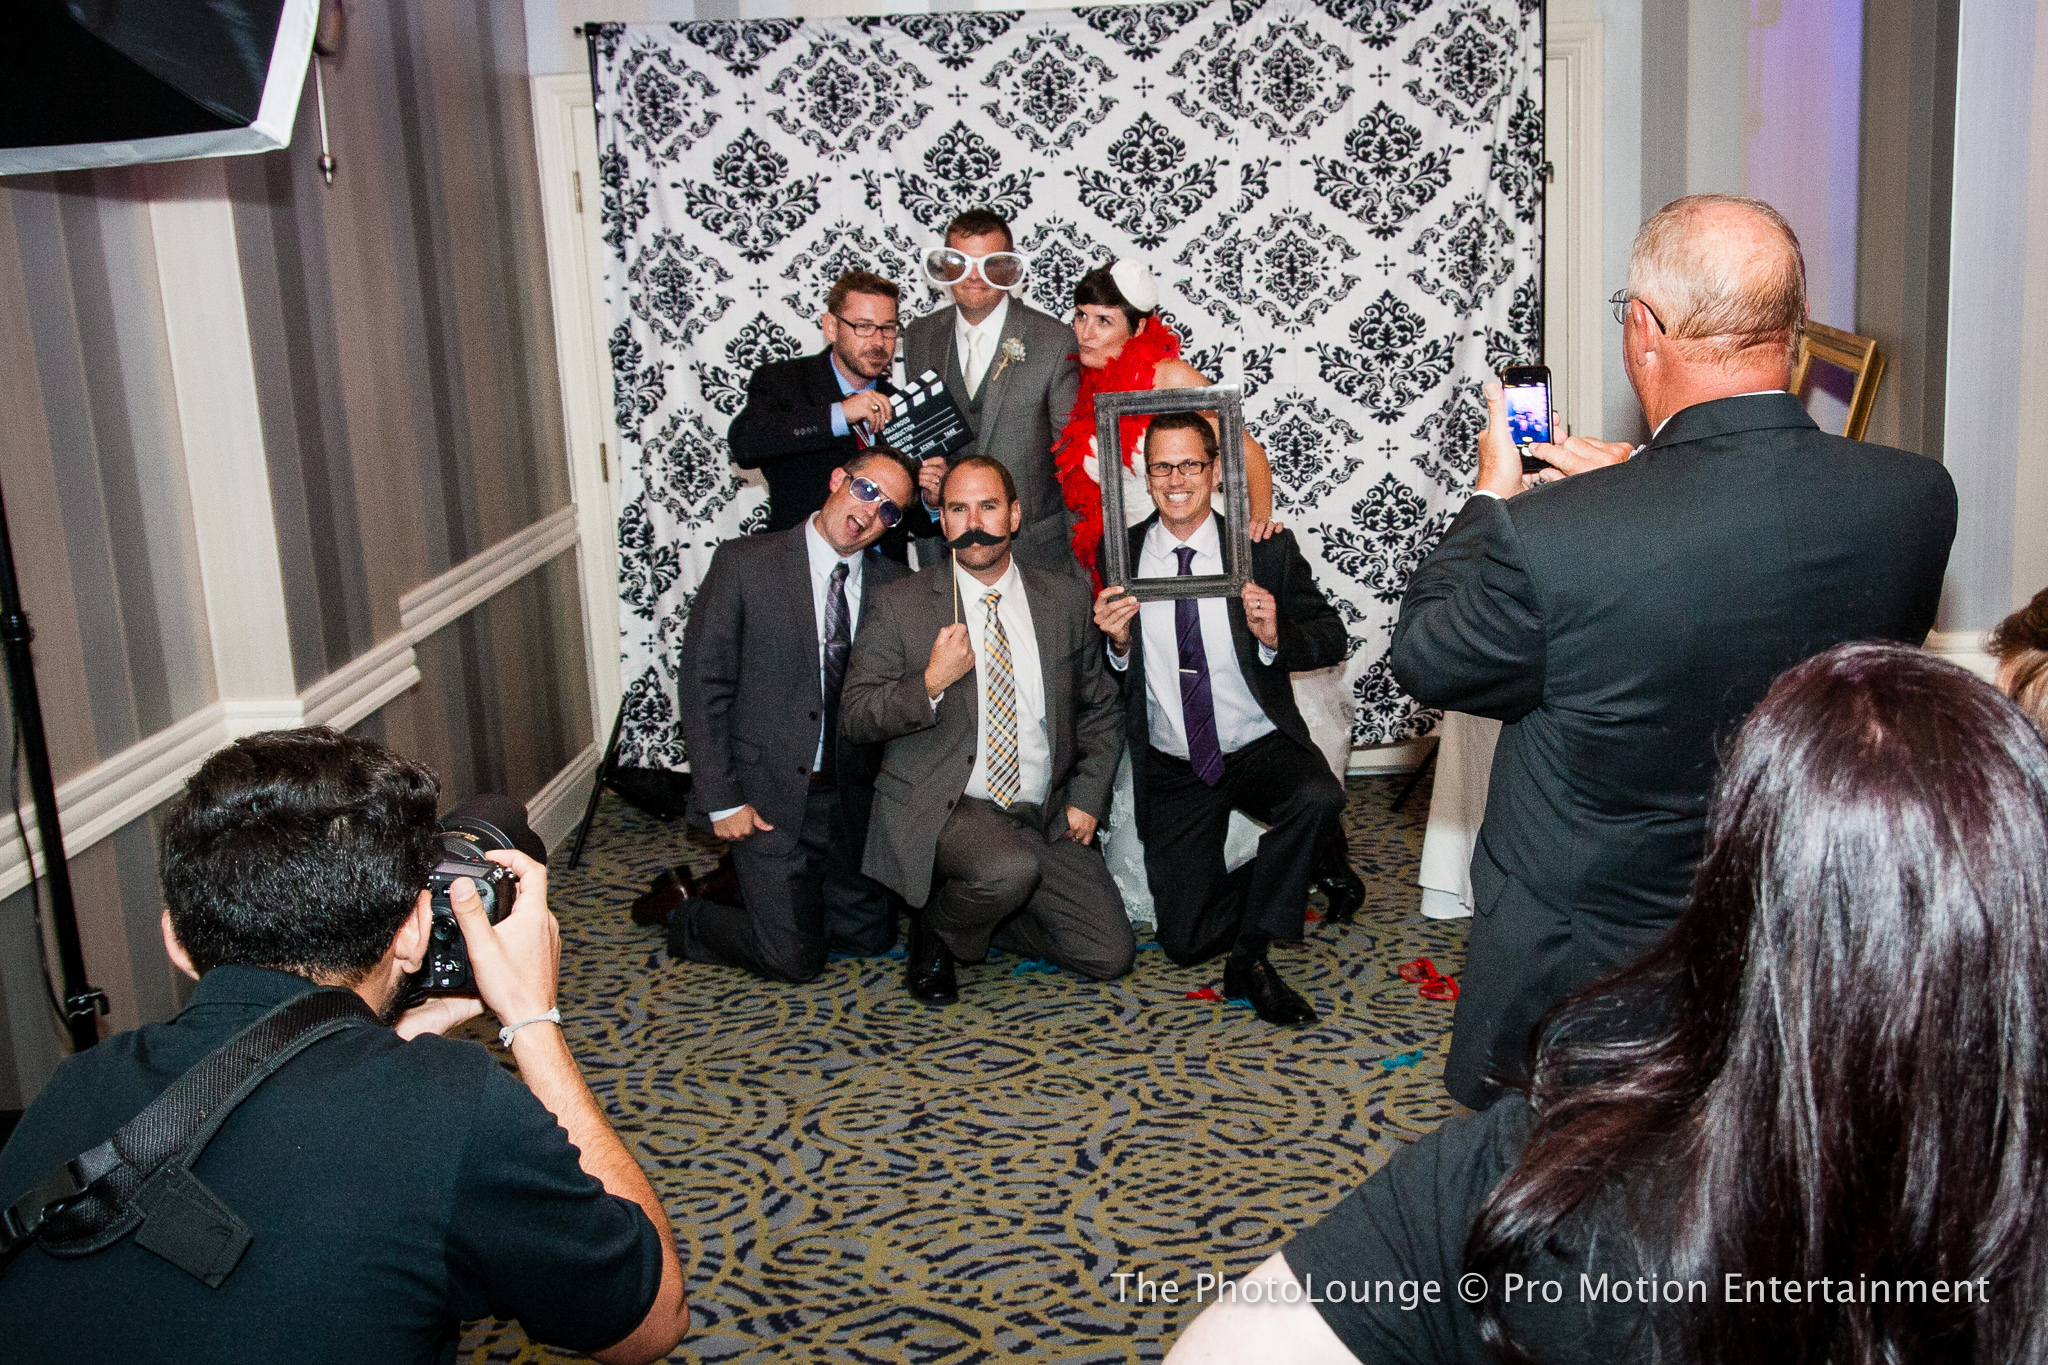 Hilton-Wedding-DJ-Lighting-Photobooth